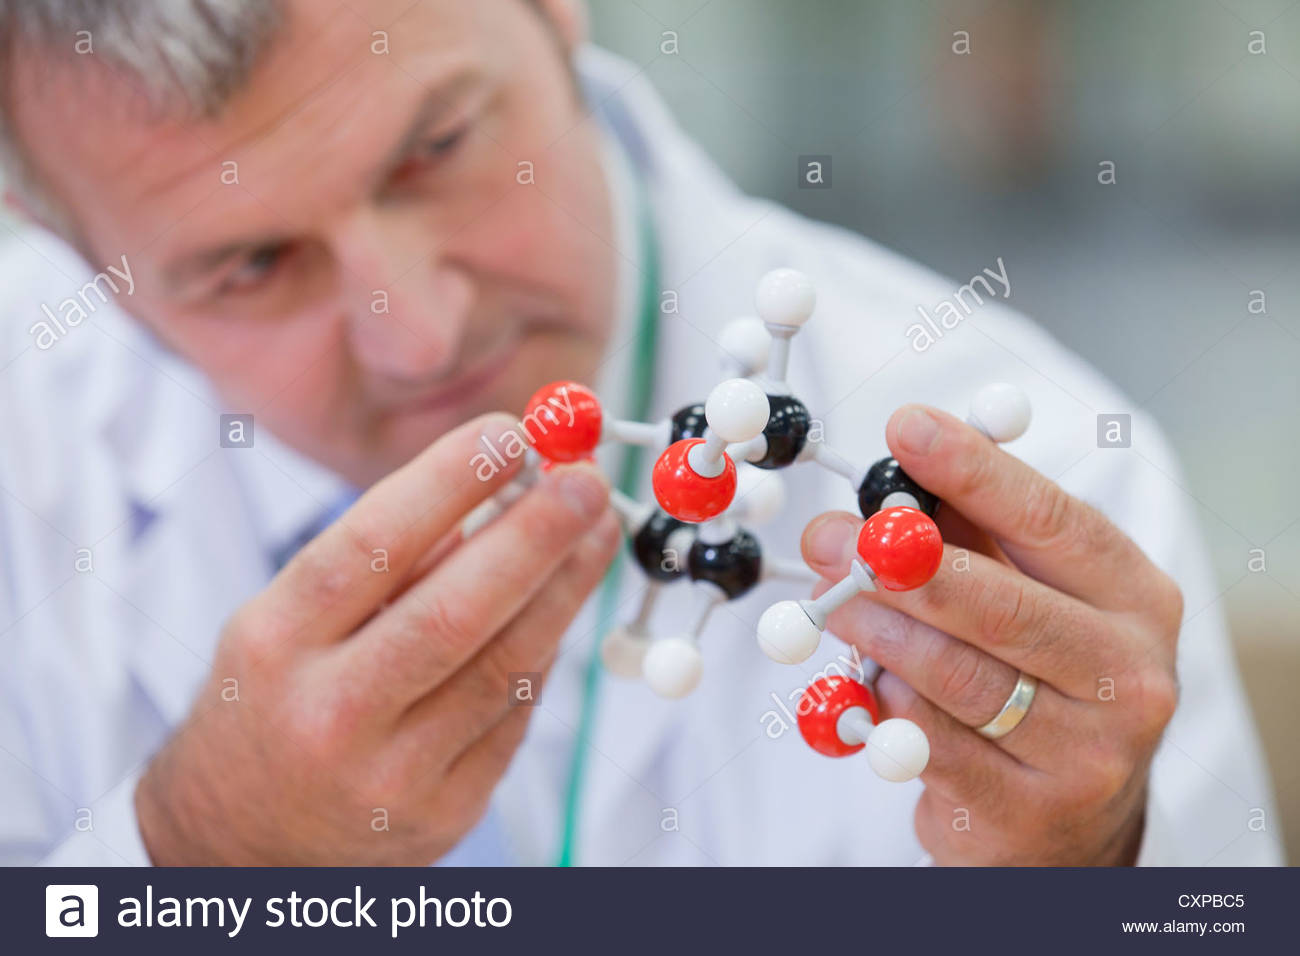 Close up of chemical engineer examining molecular structure - Stock Image